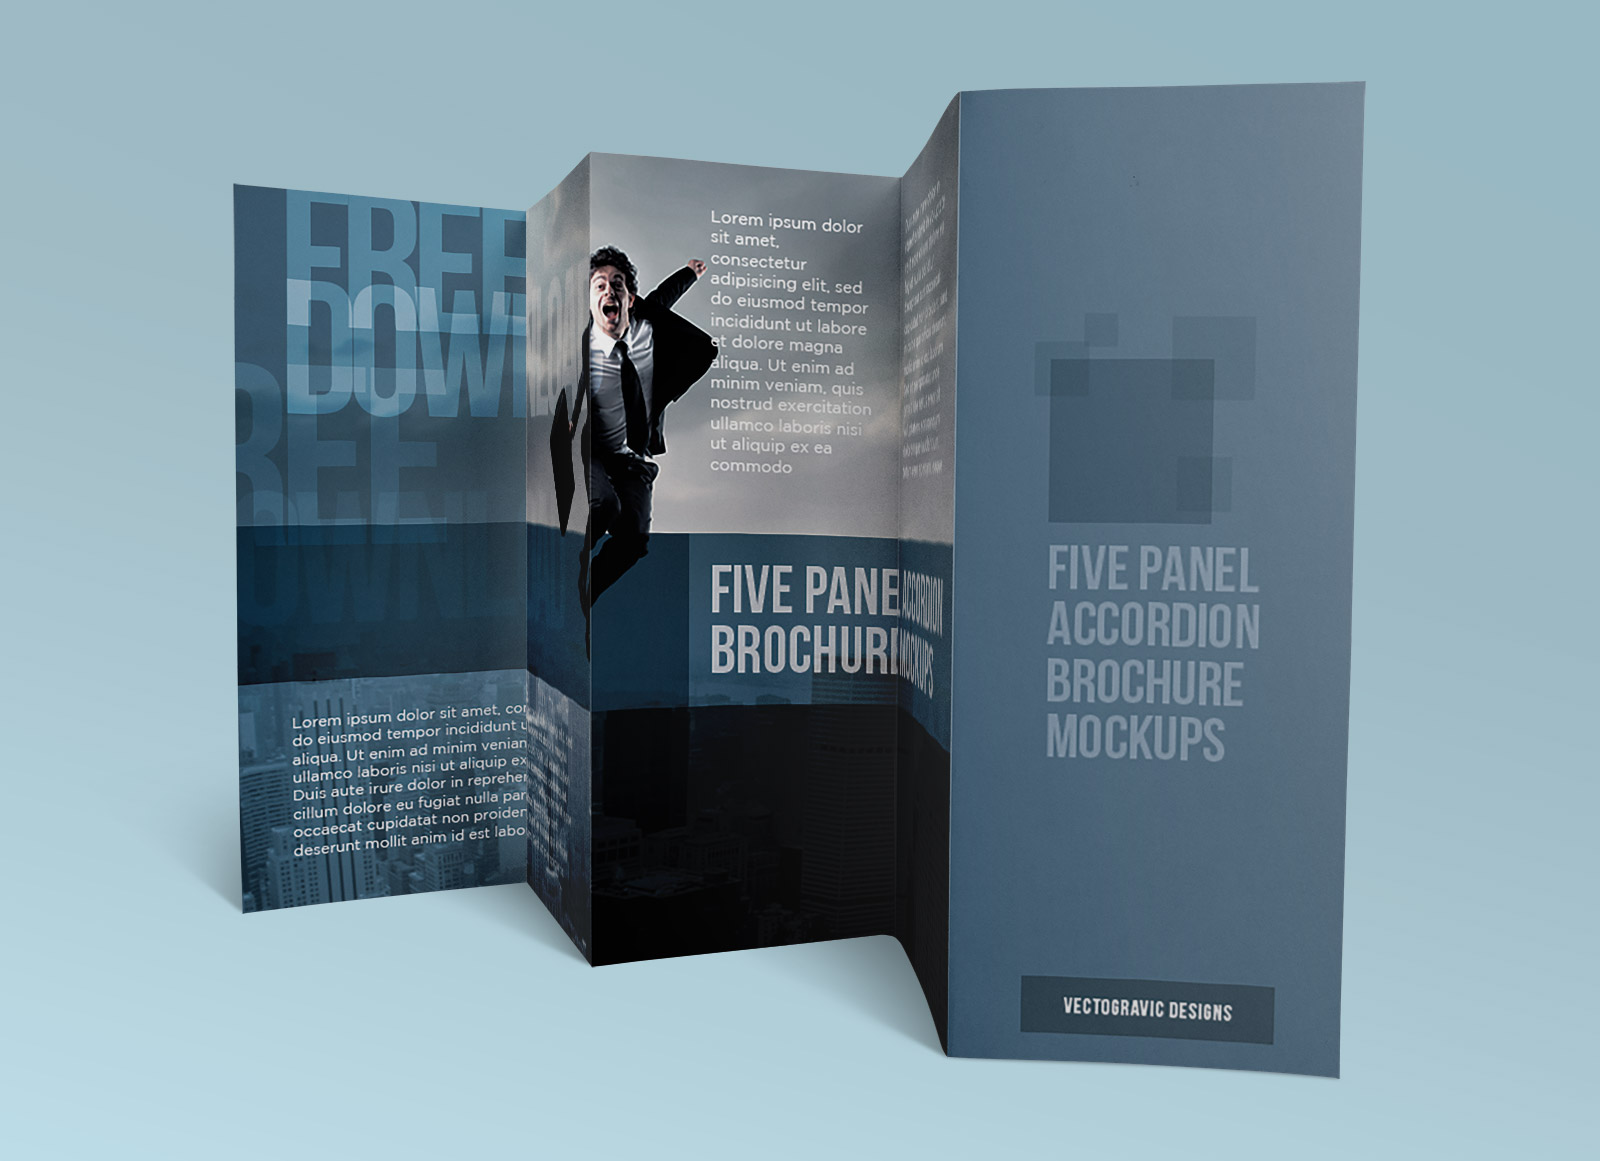 Free-Five-panel-accordion-brochure-mockup-psd-2